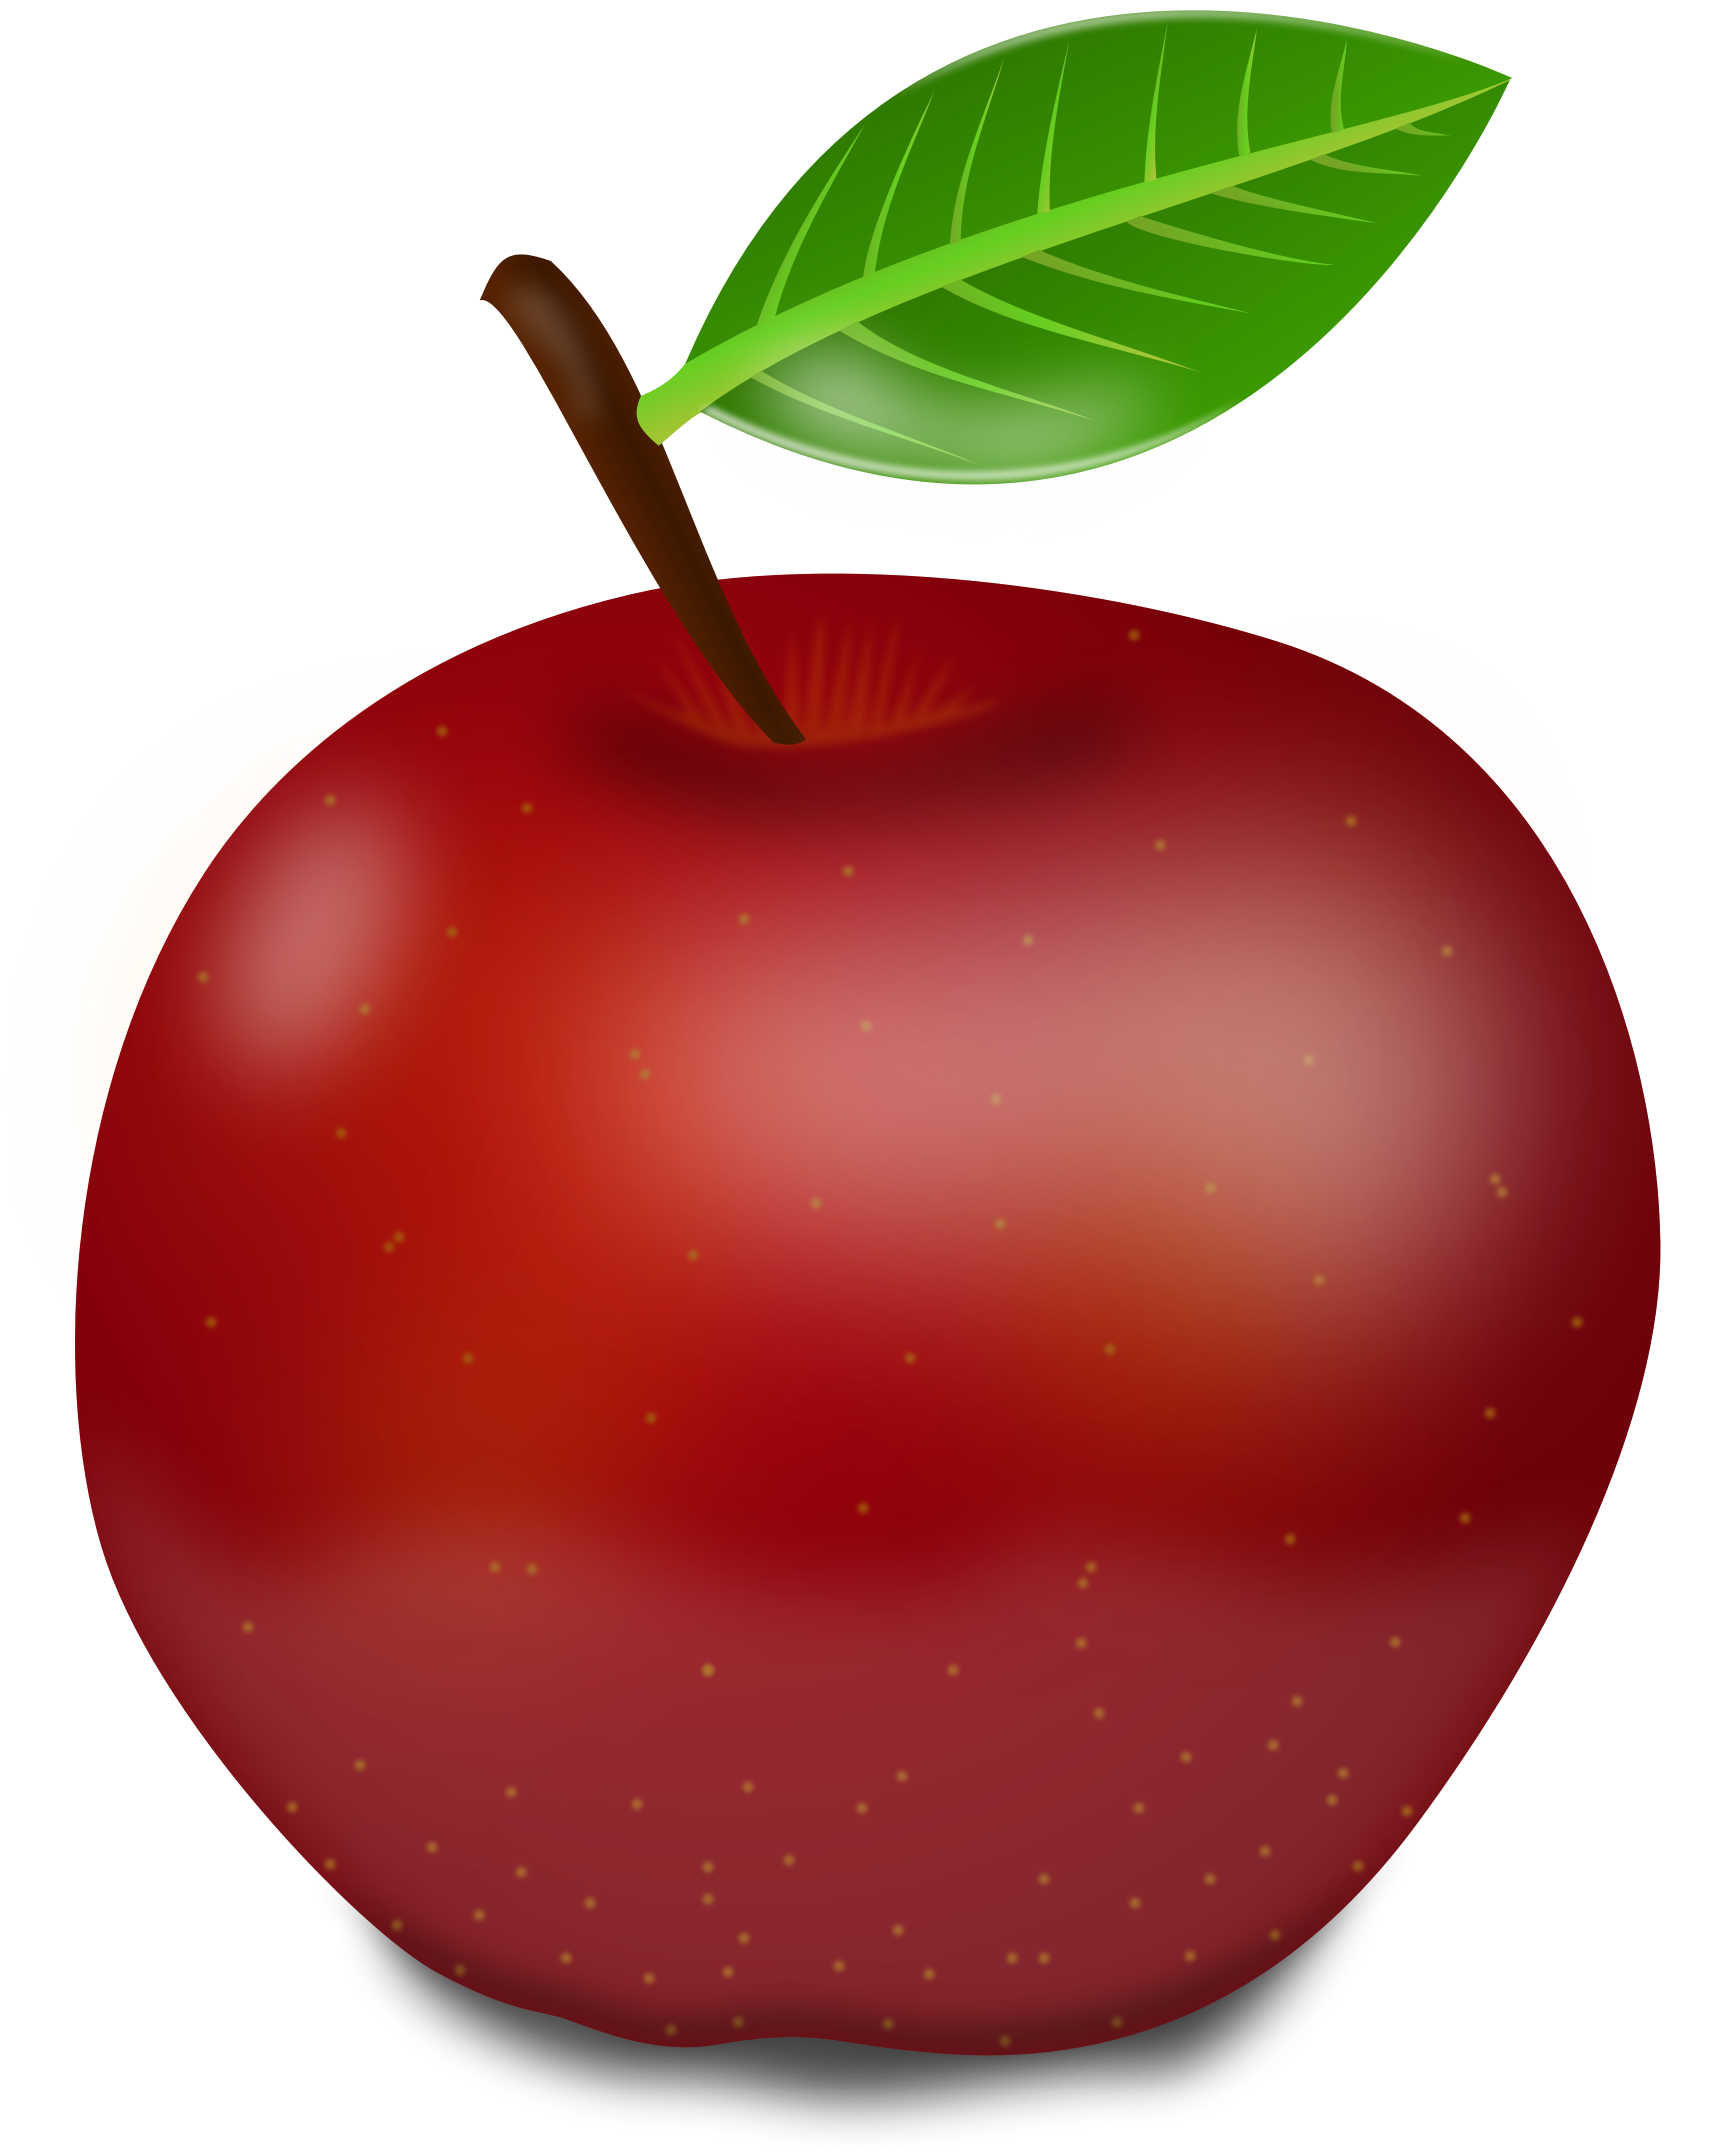 Apple clipart small apple Apple Clipart Red apple Red